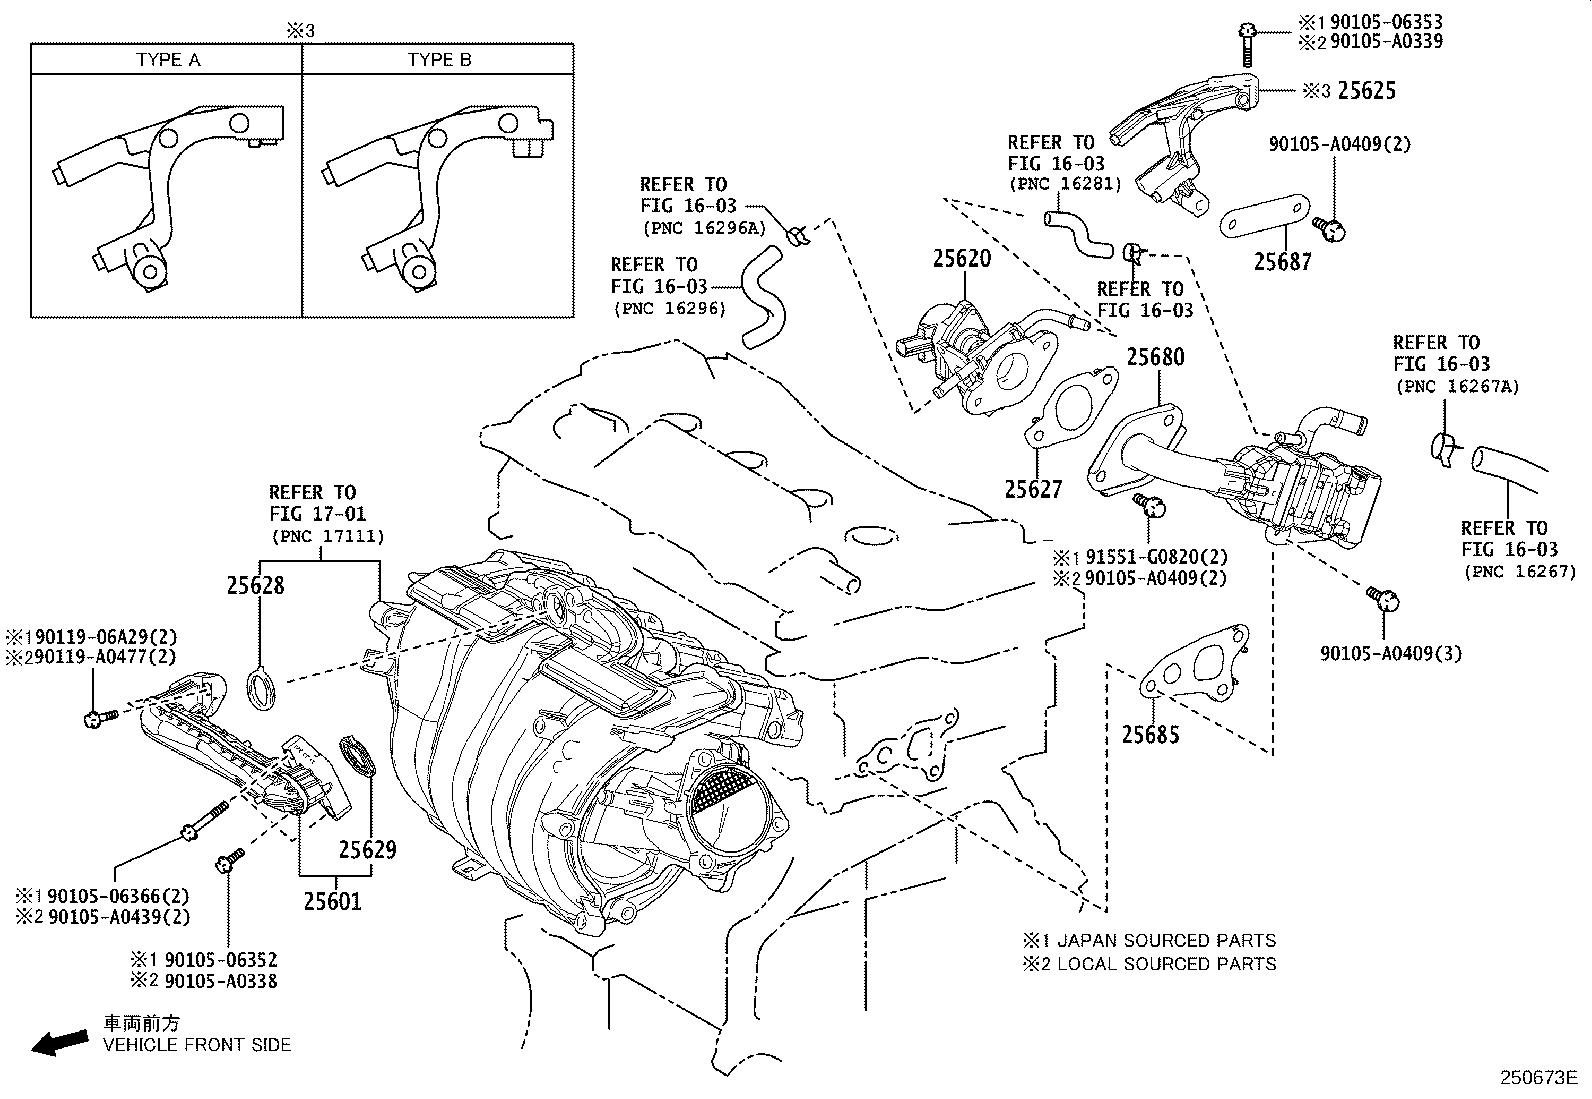 Toyota Rav4 Egr Cooler Cools Exhaust Gas Before It Enters